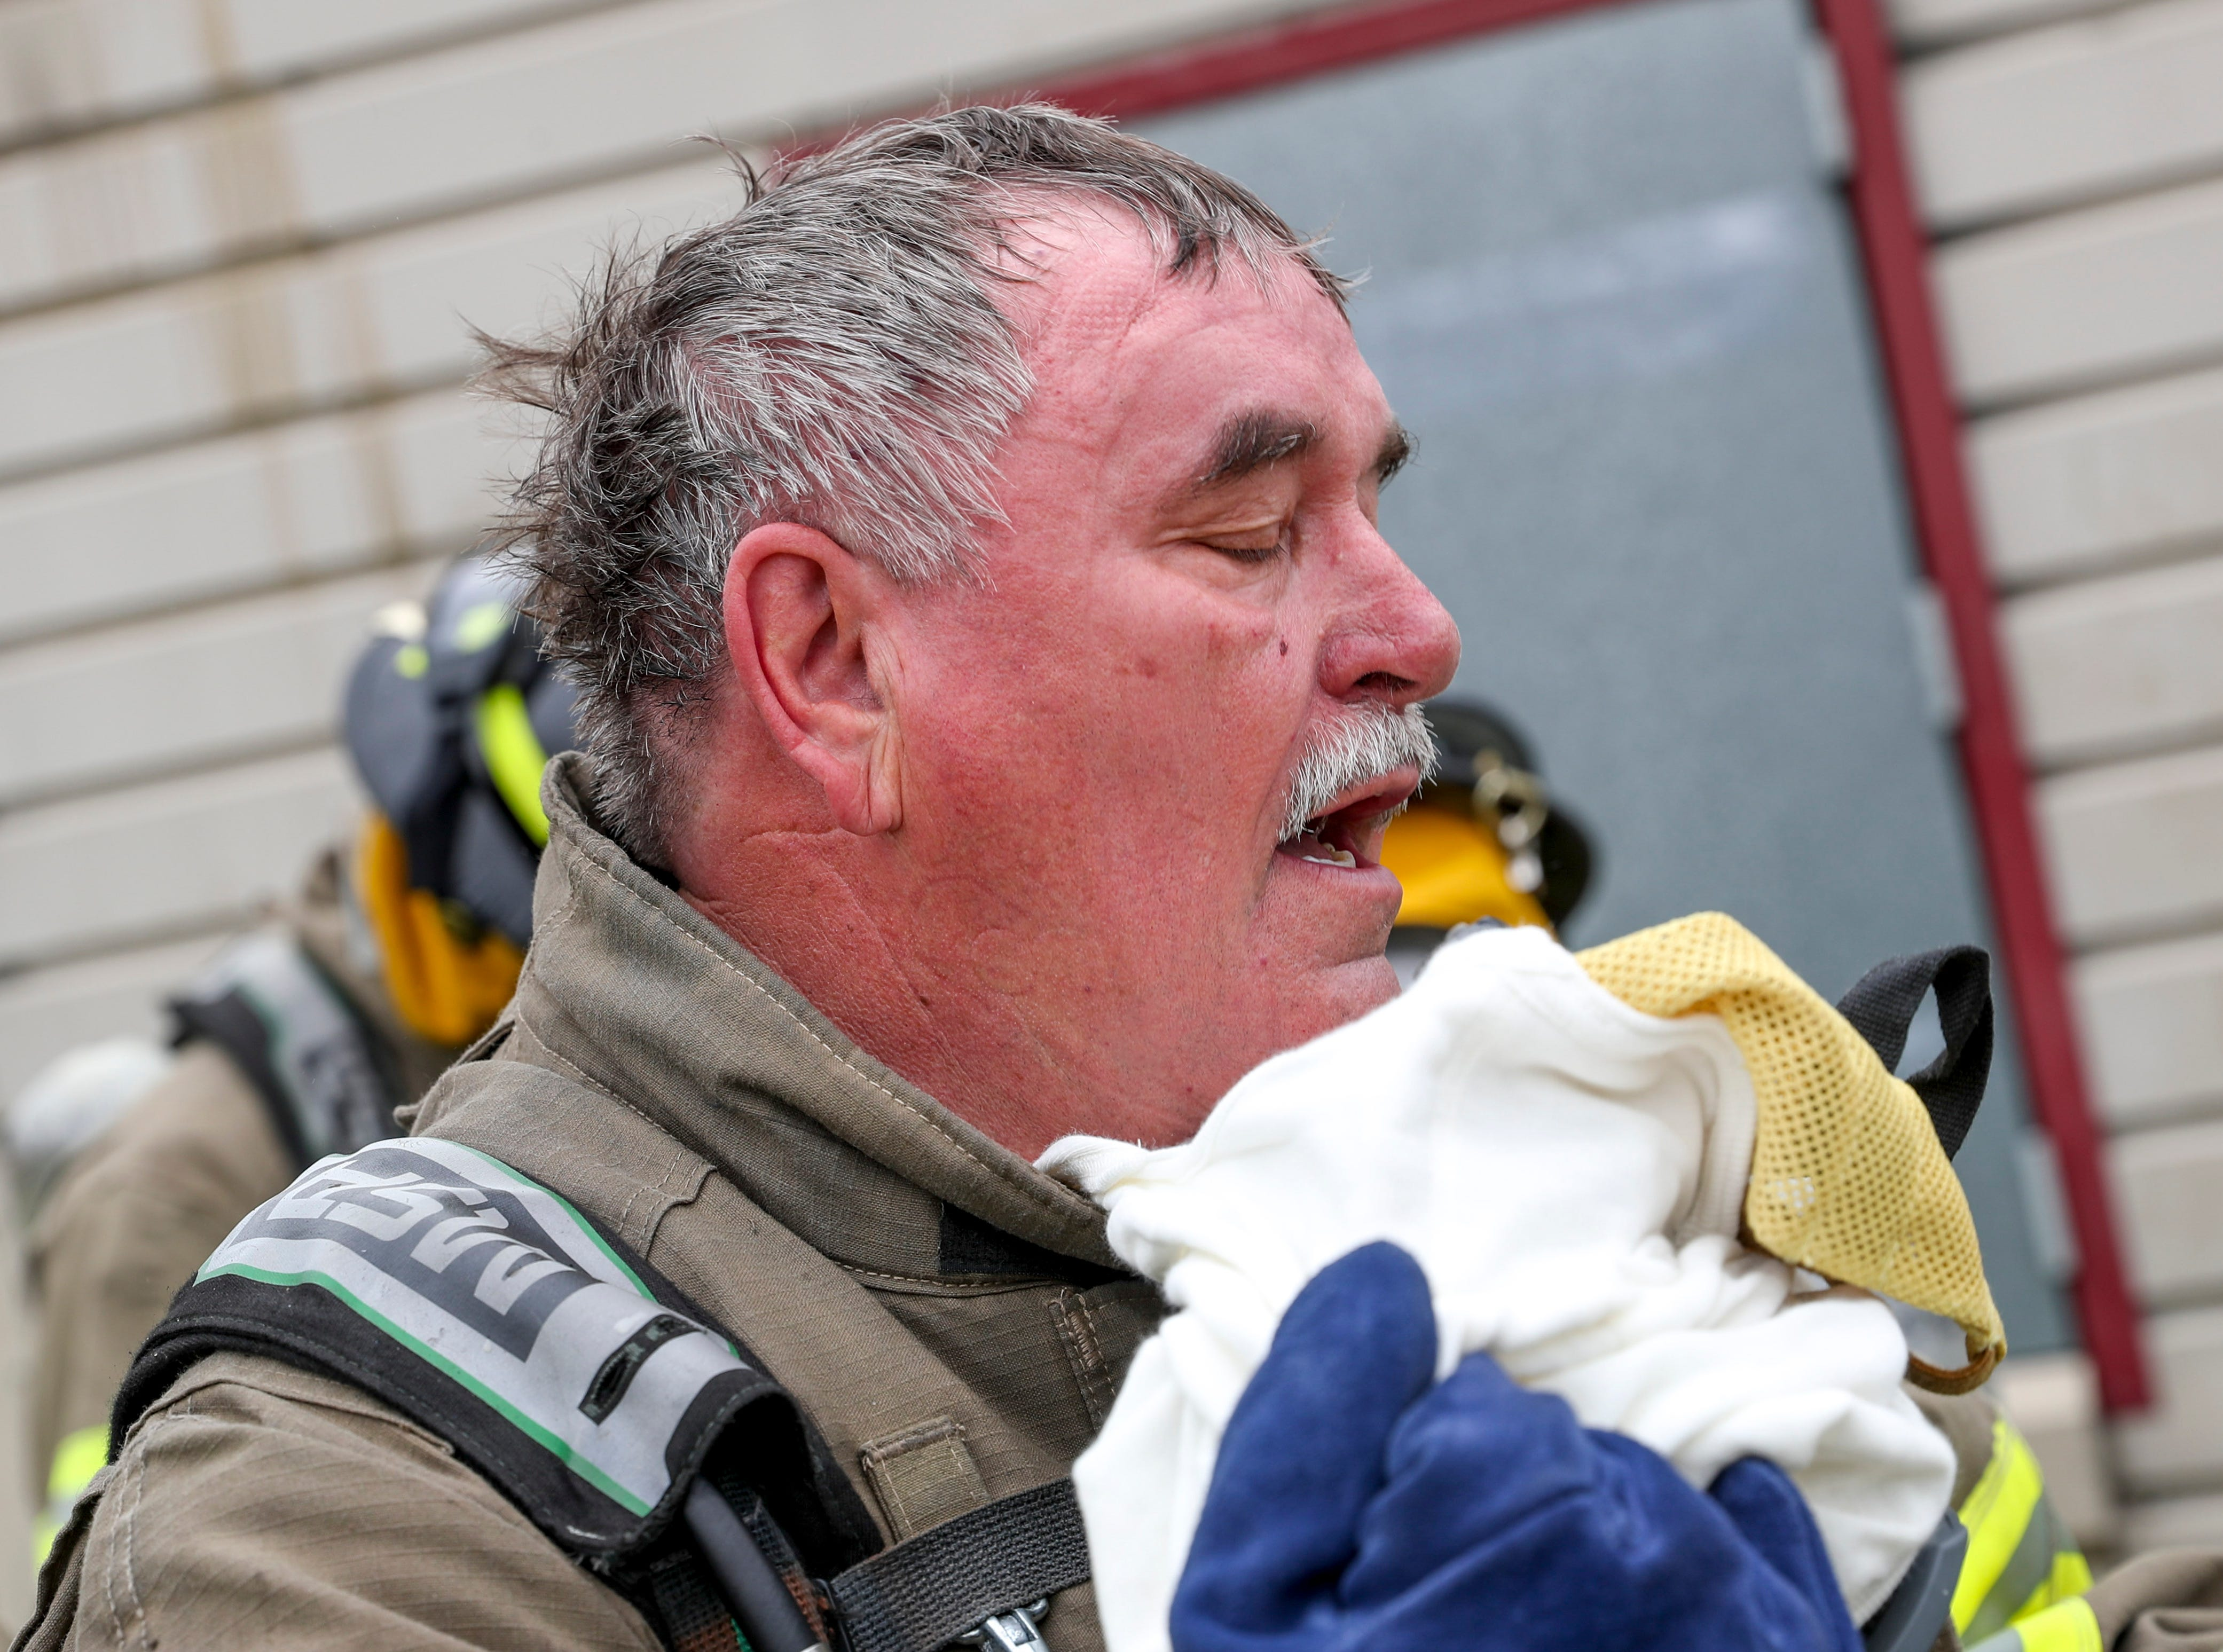 Chief Mike Roberts pulls off his mask and protective layers after emerging fro the burn building at Clarksville Fire Rescue in Clarksville, Tenn., on Friday, May 10, 2019.